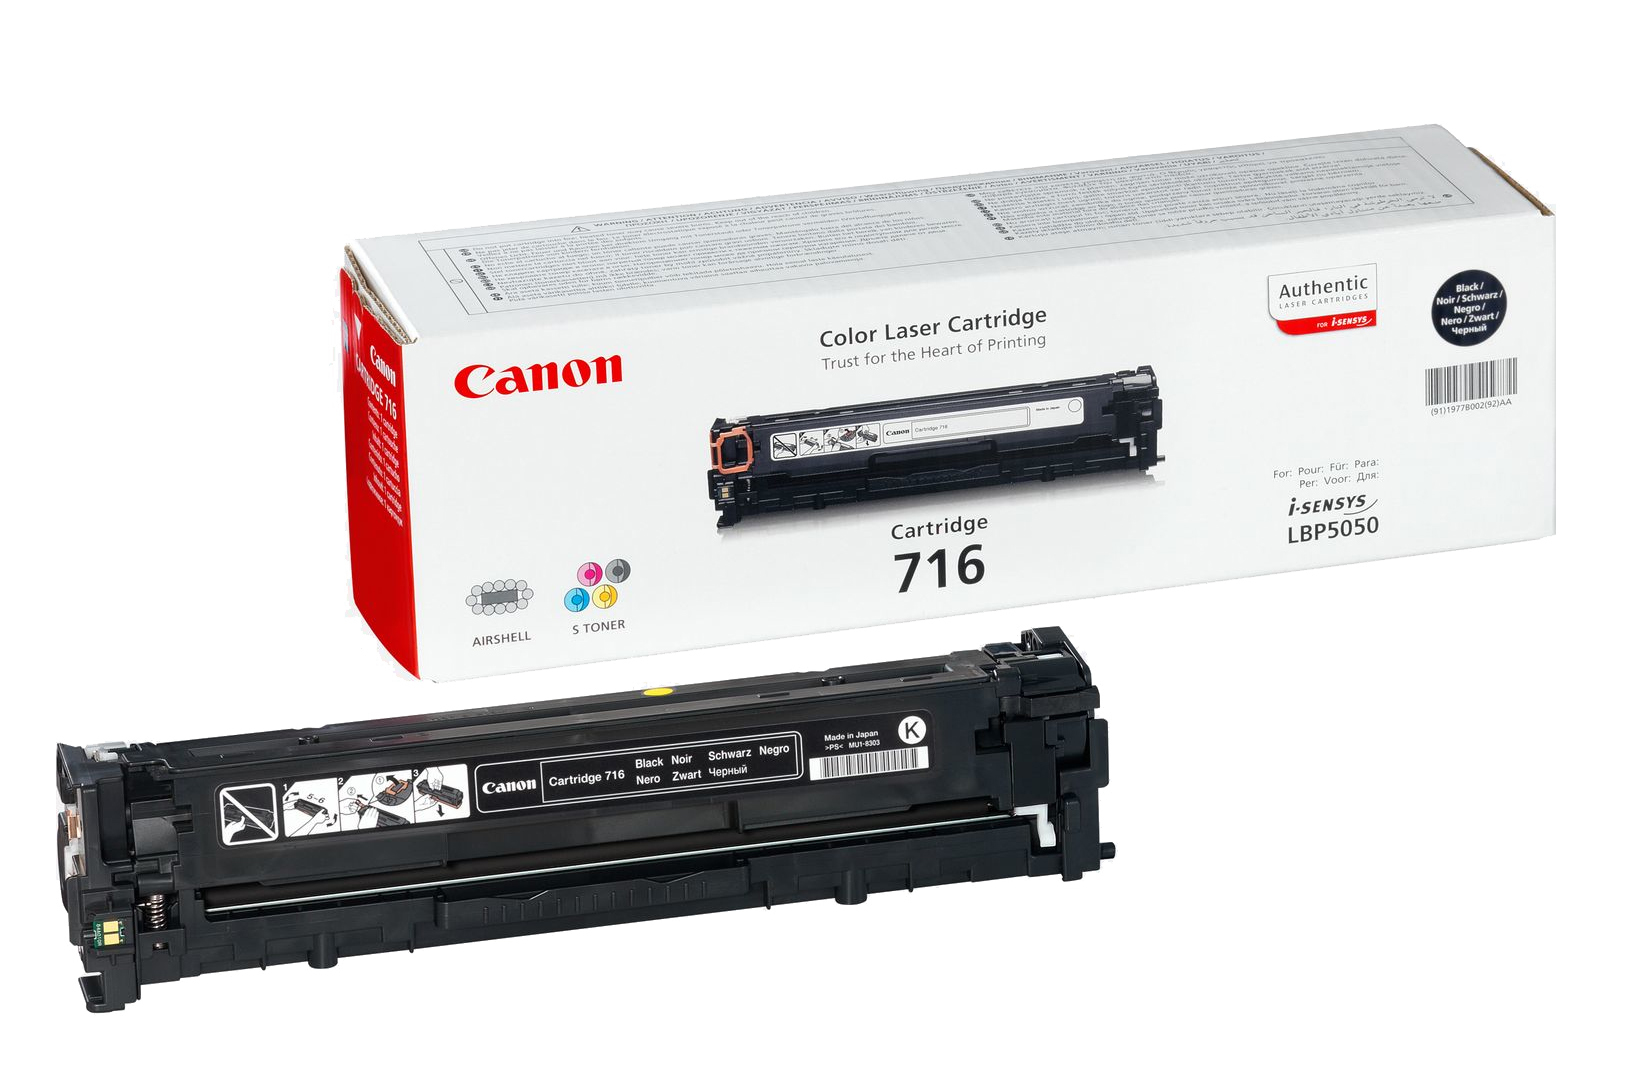 Remanufactured Canon 1980B002AA Toner Cartridge Black LBP 5050 (2.2k) 1980B002 - rem01